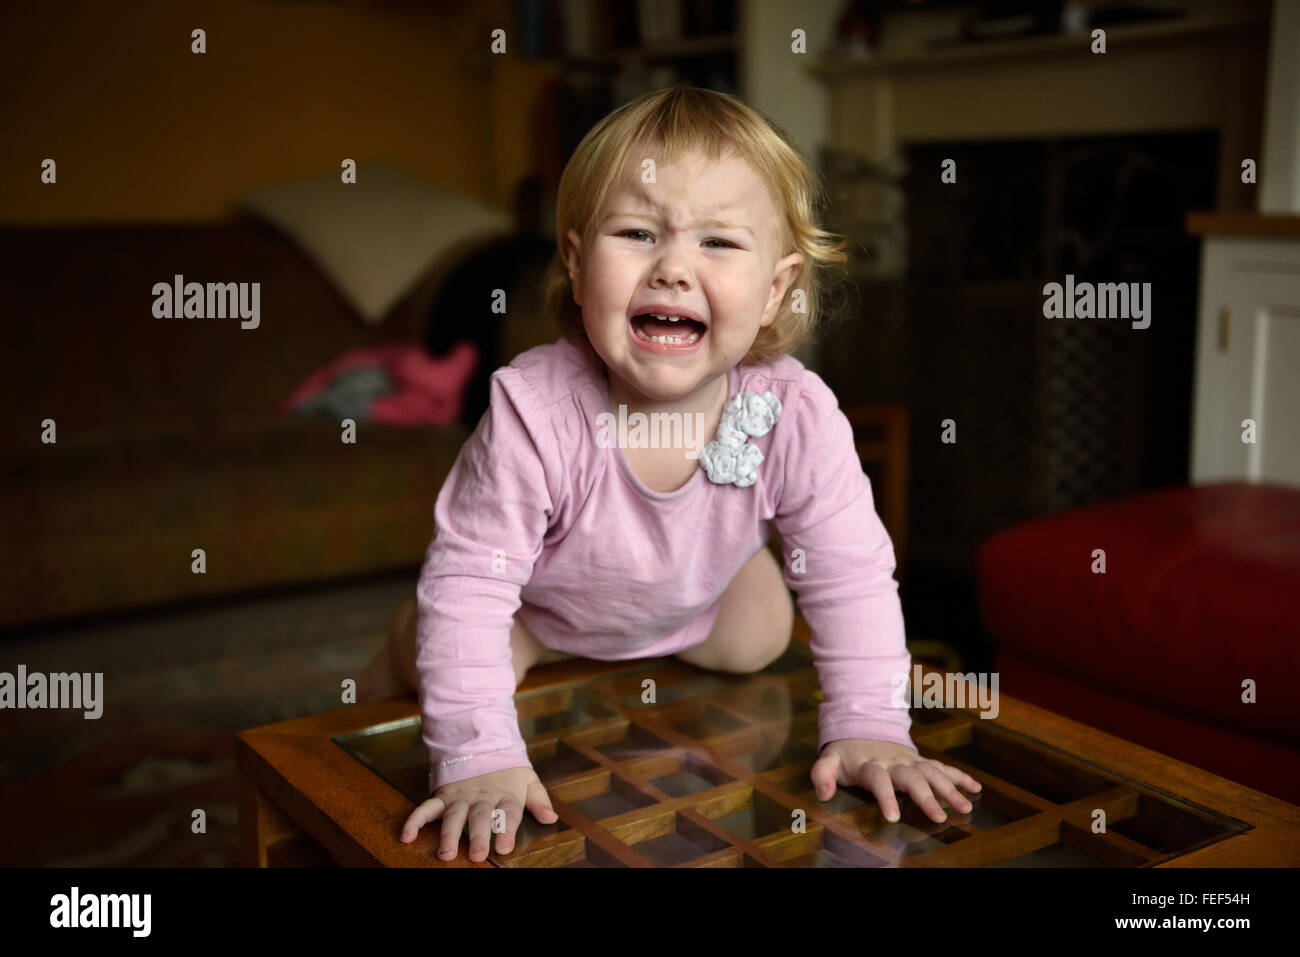 An unhappy eighteen month old baby with a temperature knelling on a side table in her home crying and looking unhappy. - Stock Image